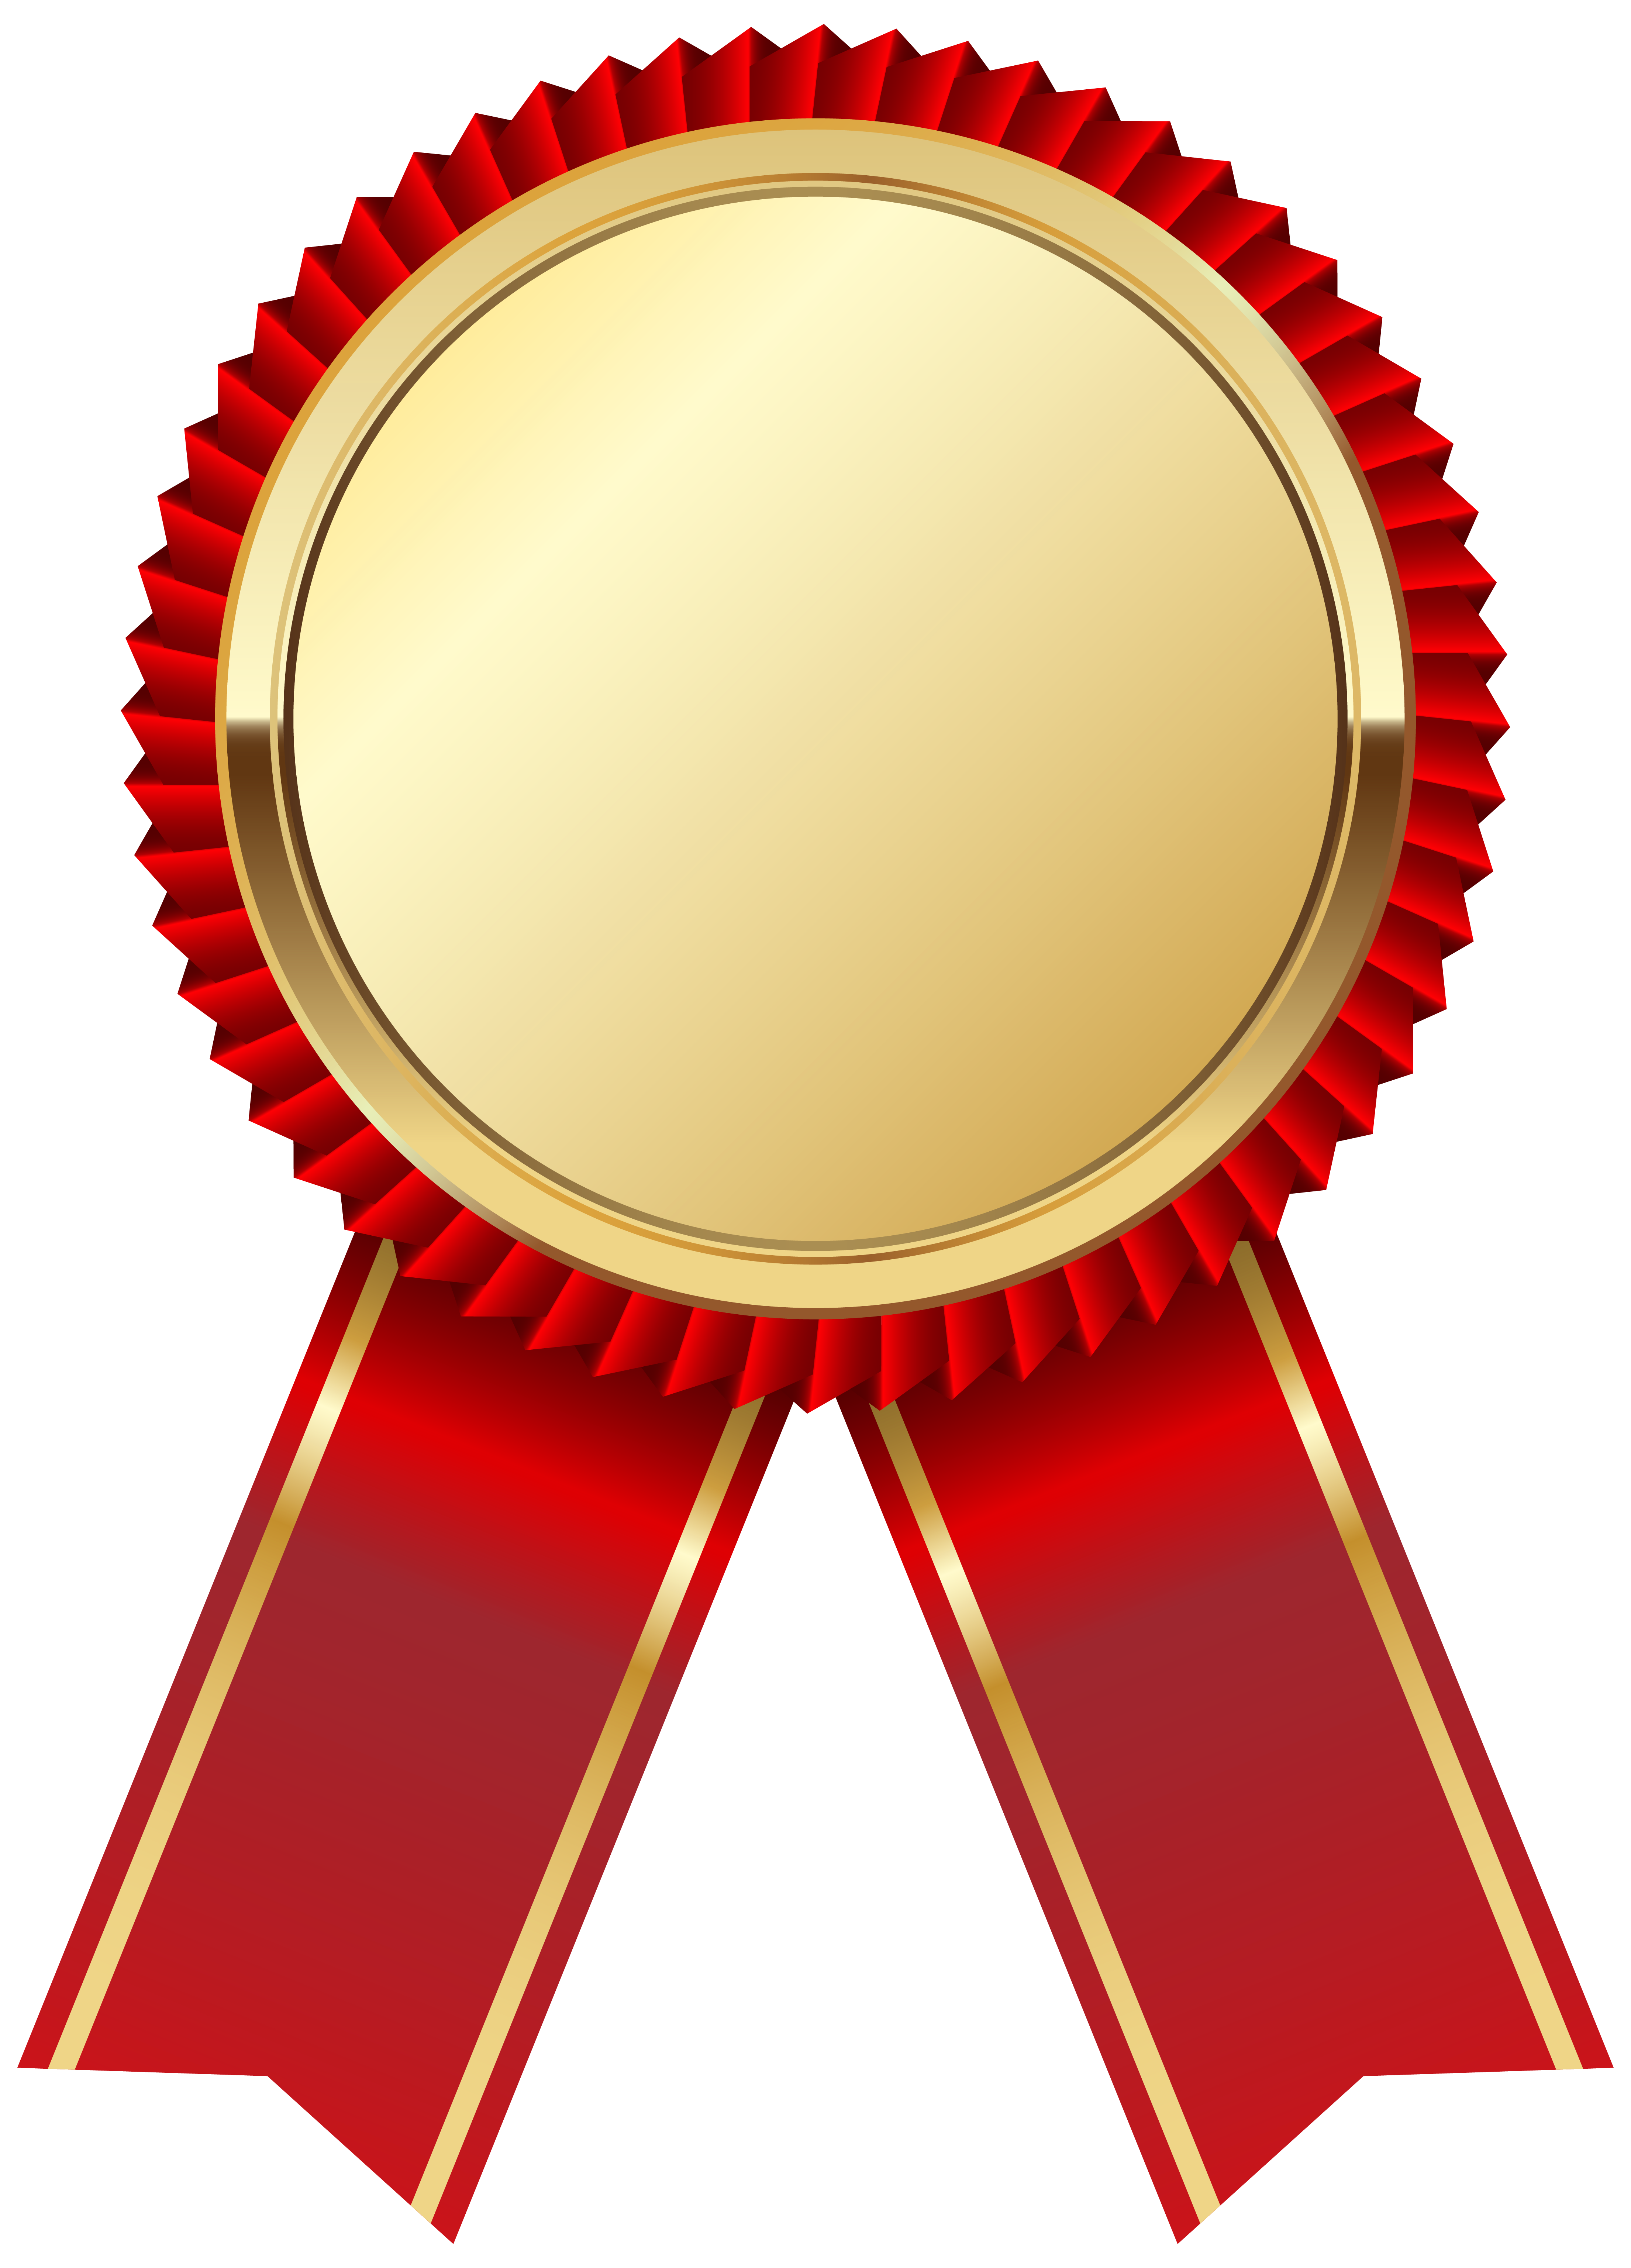 4420x6145 Gold Medal With Red Ribbon Png Clipart Pictureu200b Gallery